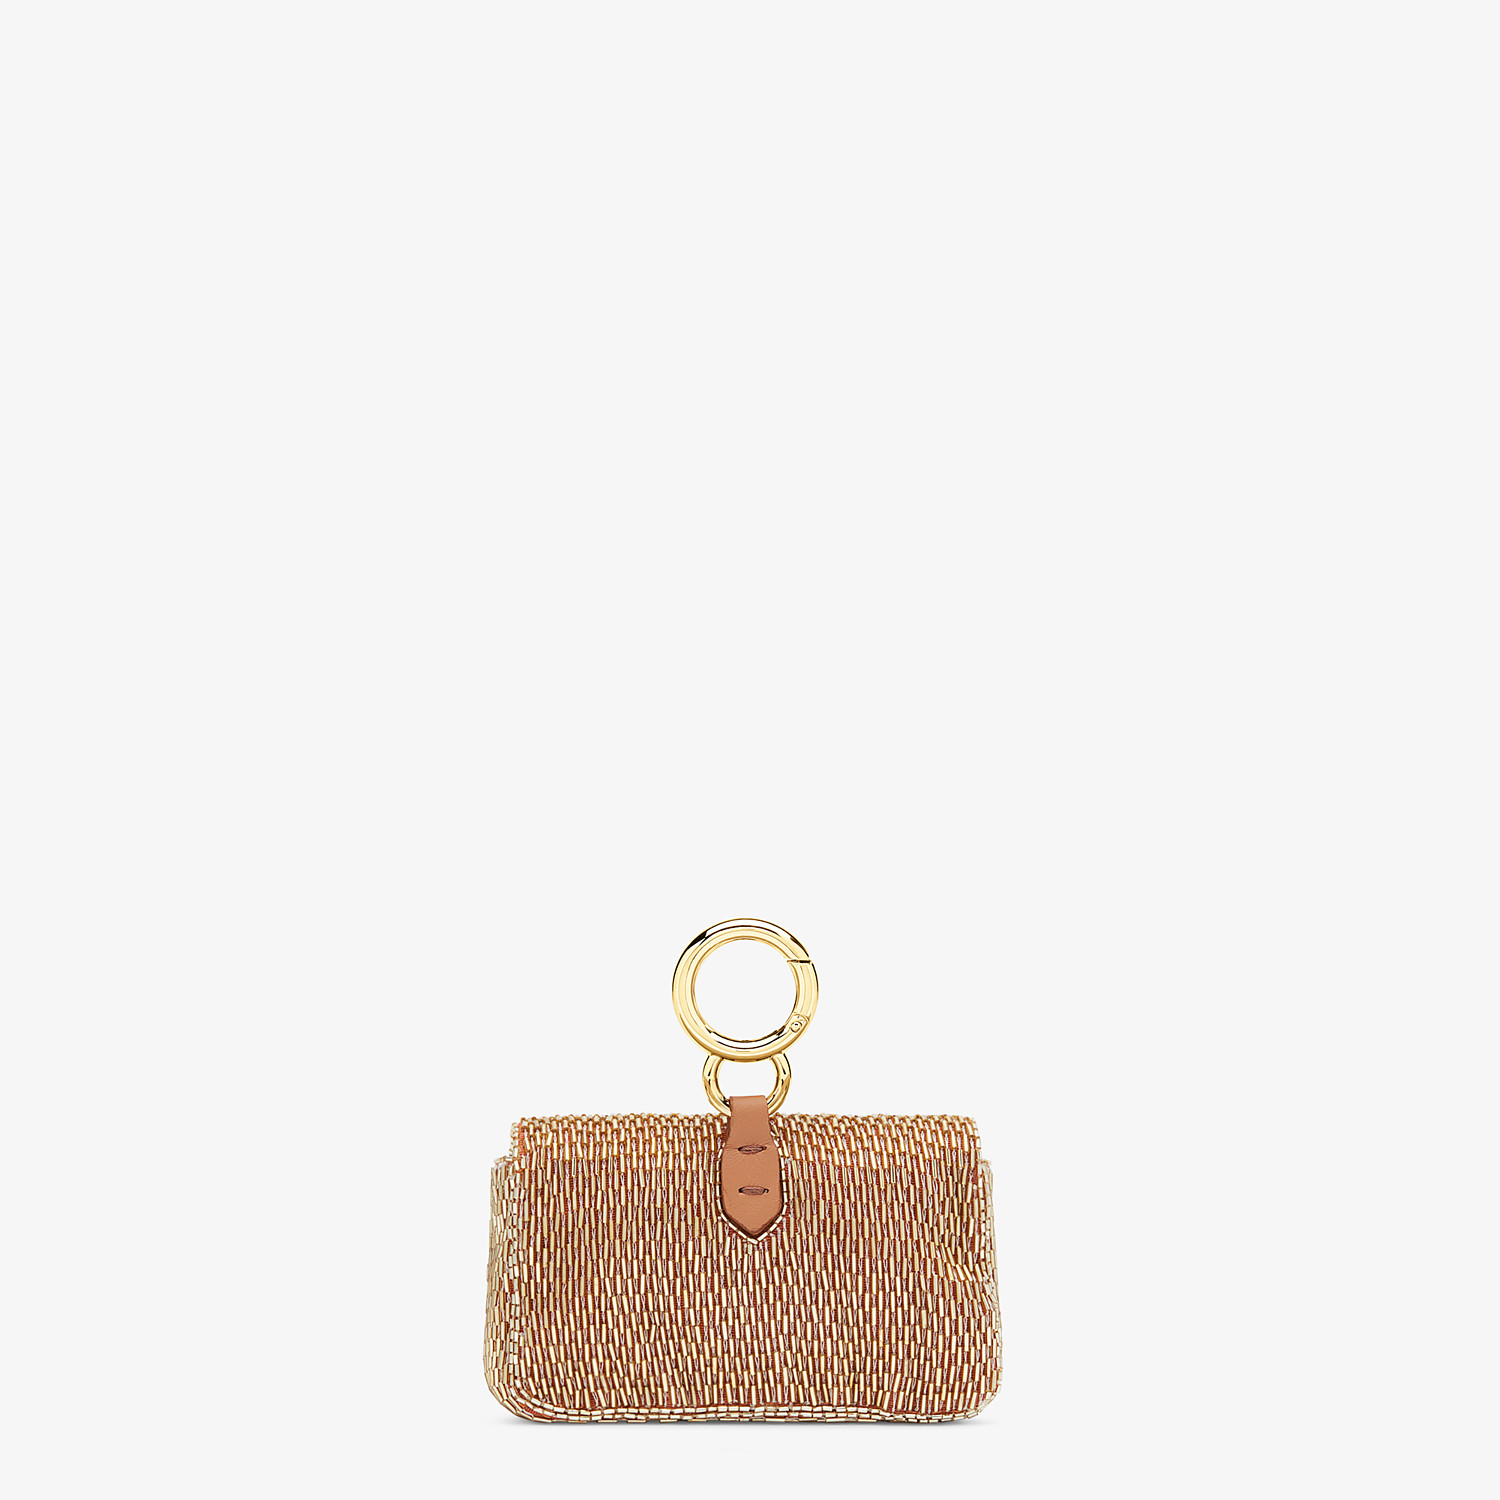 FENDI NANO BAGUETTE - Brown leather charm - view 3 detail